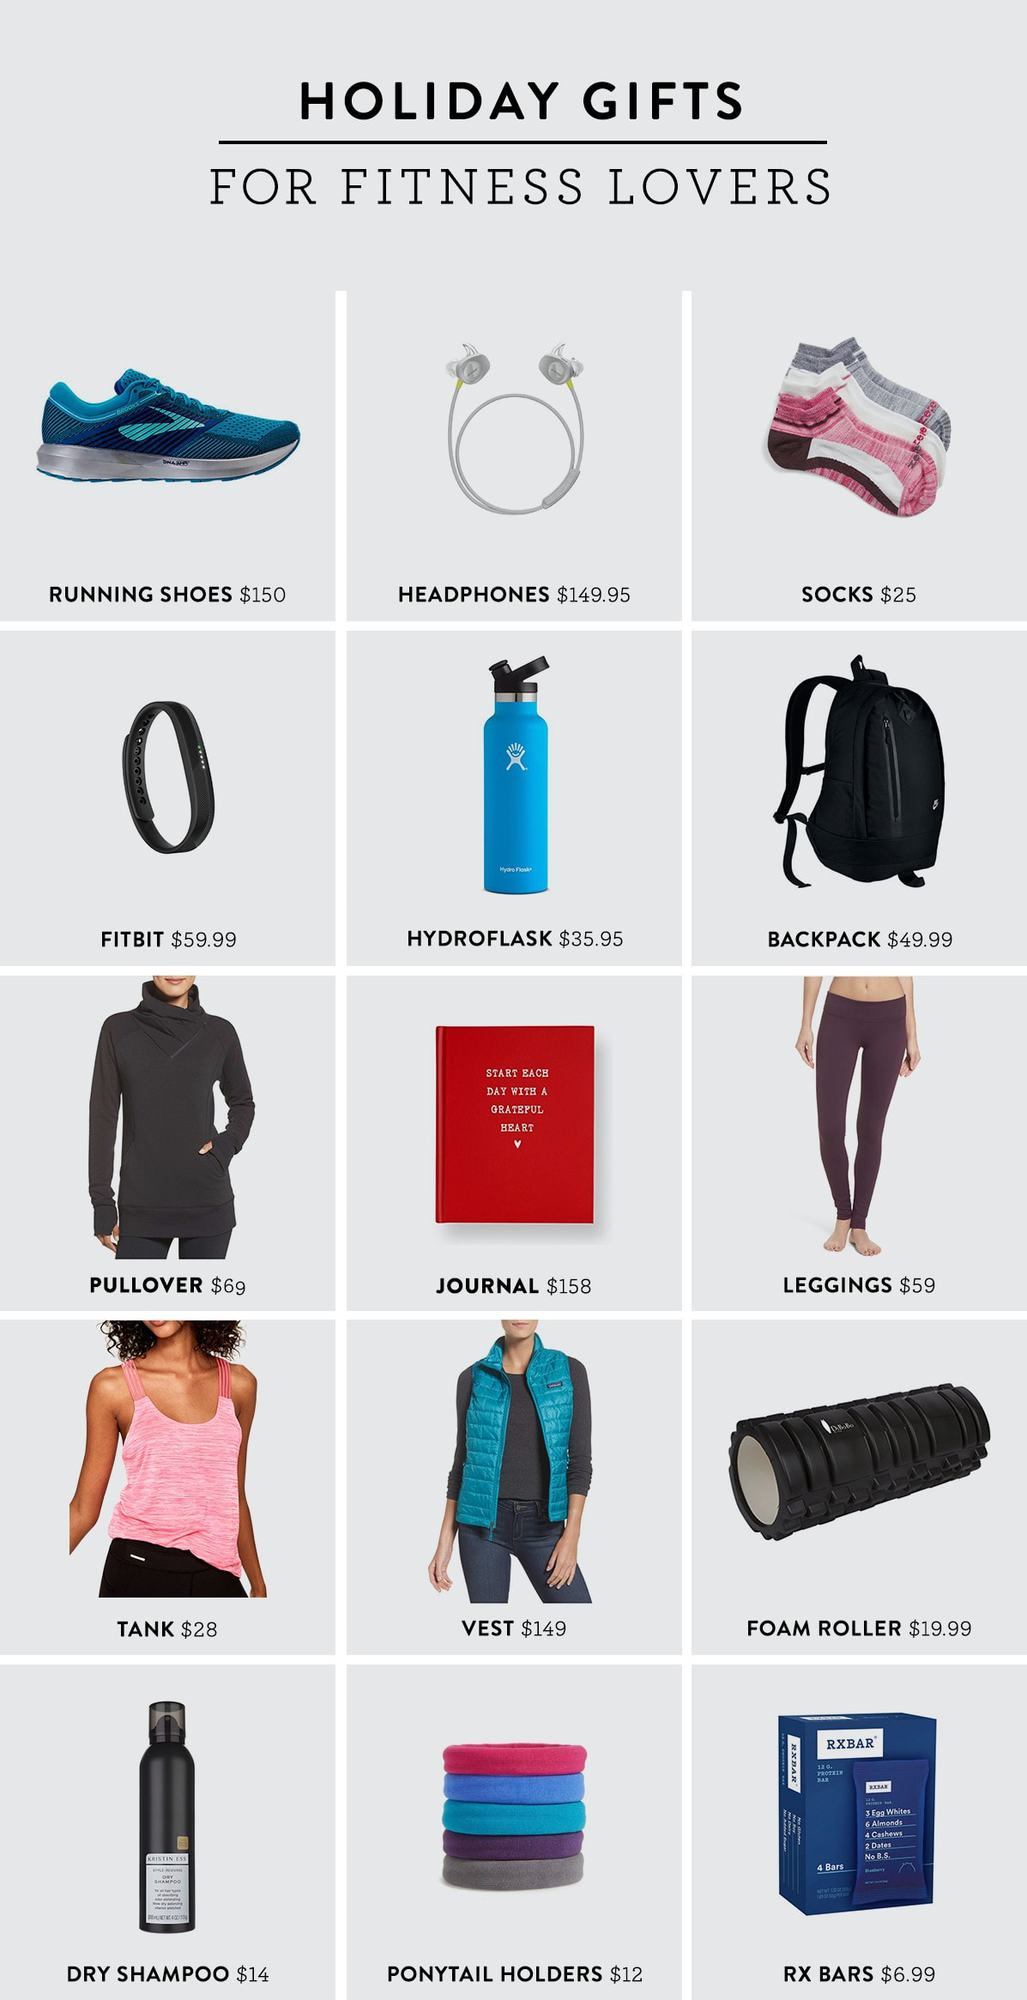 Looking to wow the fitness lover in your life this holiday season? We can bet she will love any of these holiday gifts for fitness lovers. Guarantee her a successful sweat sesh with this new gear!